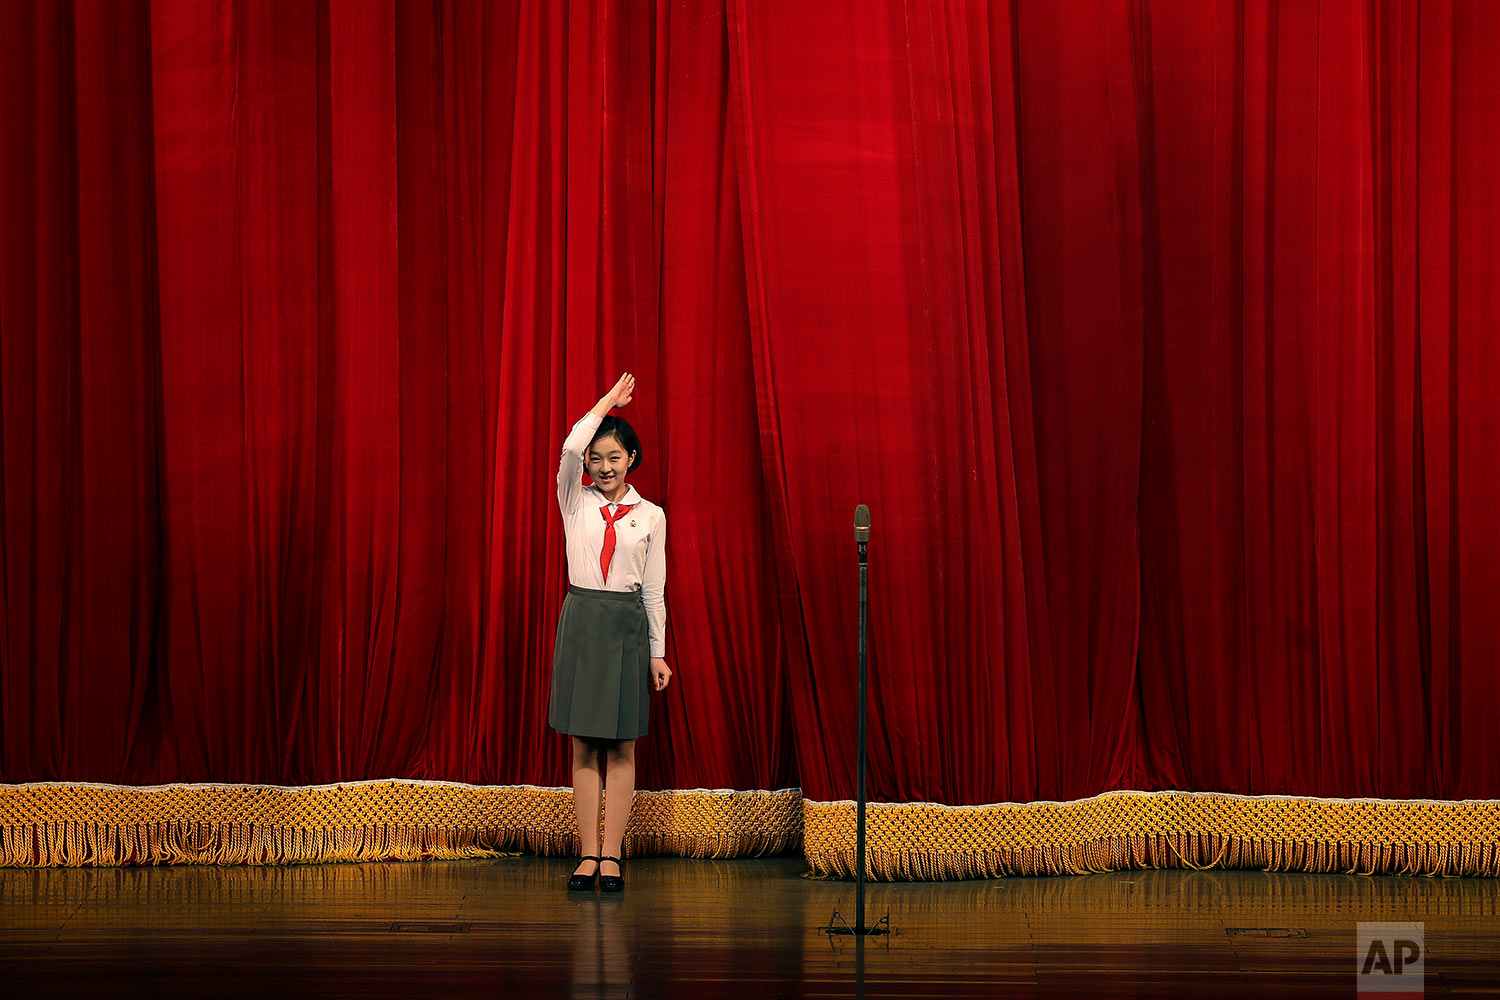 A North Korean student salutes the audience at the start of a performance at the Mangyongdae Children's Palace on Friday, April 14, 2017, in Pyongyang, North Korea. Amid rising regional tensions, Pyongyang residents have been preparing for North Korea's most important holiday: the 105th birth anniversary of Kim Il Sung, the country's late founder and grandfather of current ruler Kim Jong Un. (AP Photo/Wong Maye-E)